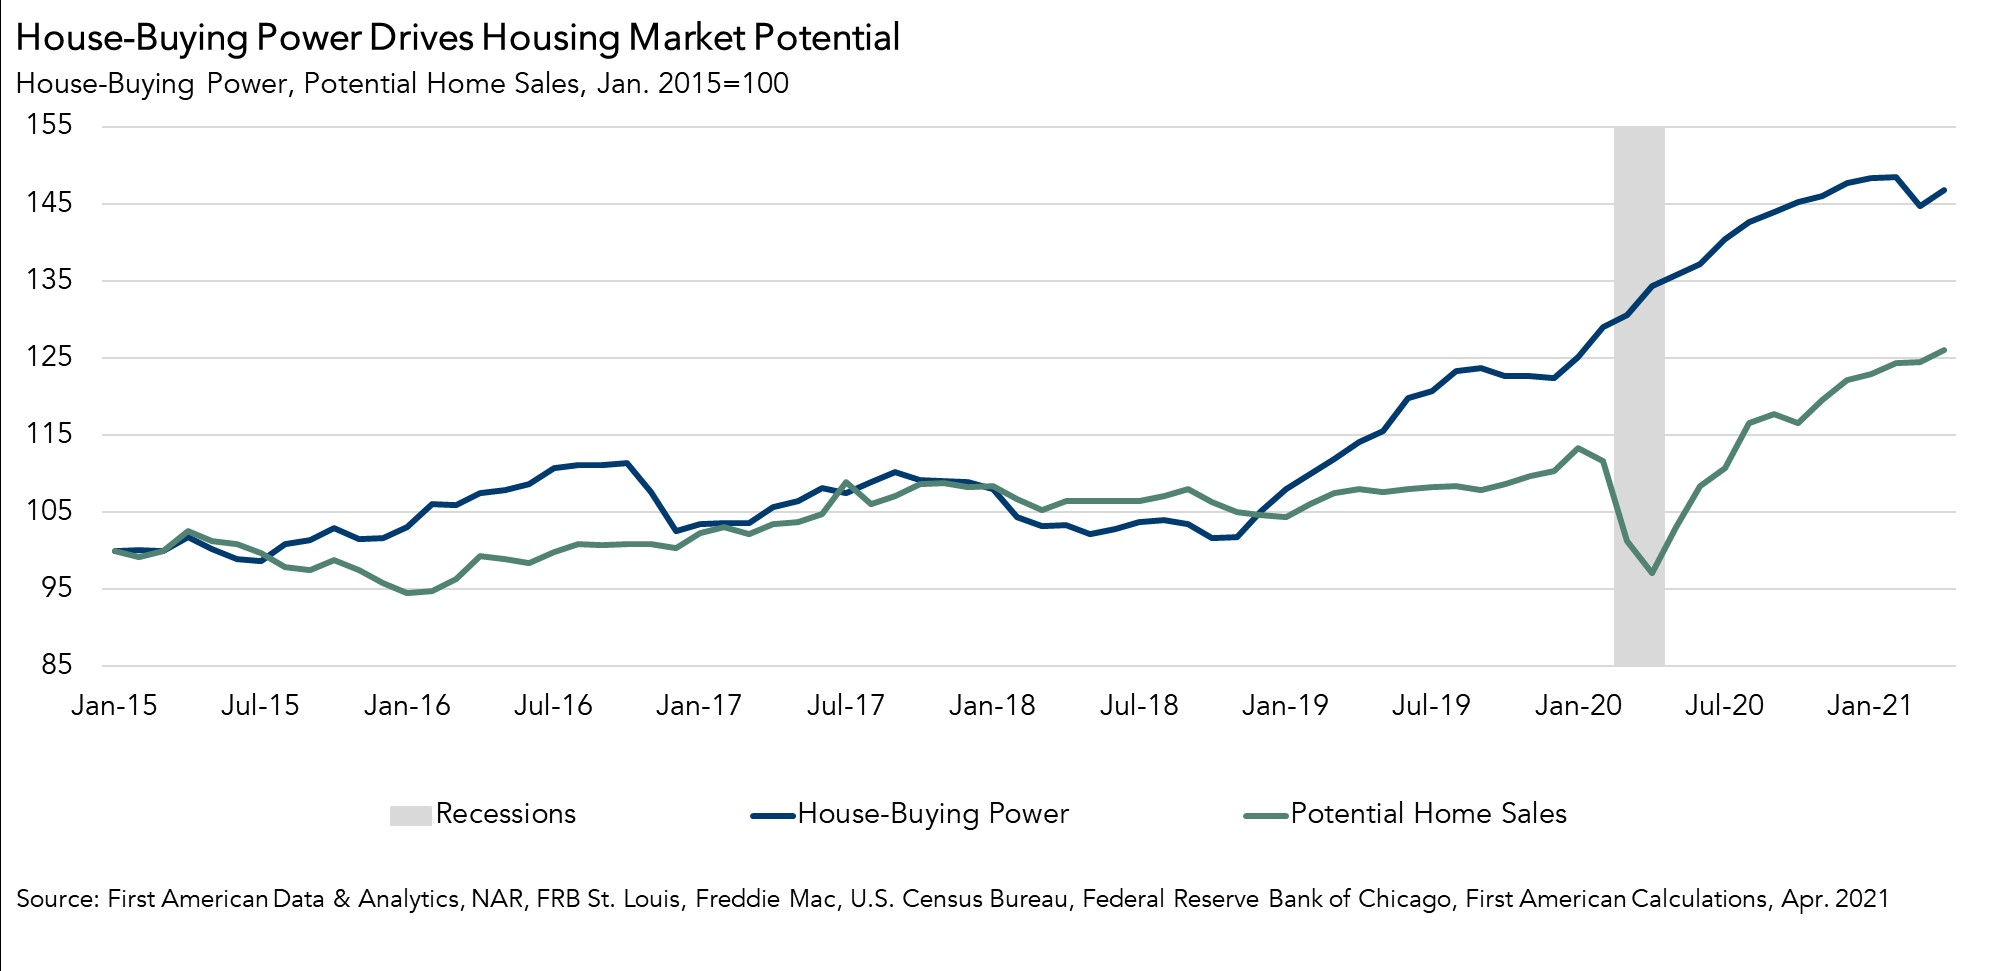 House-Buying Power Drives Housing Market Potential Chart April 2021